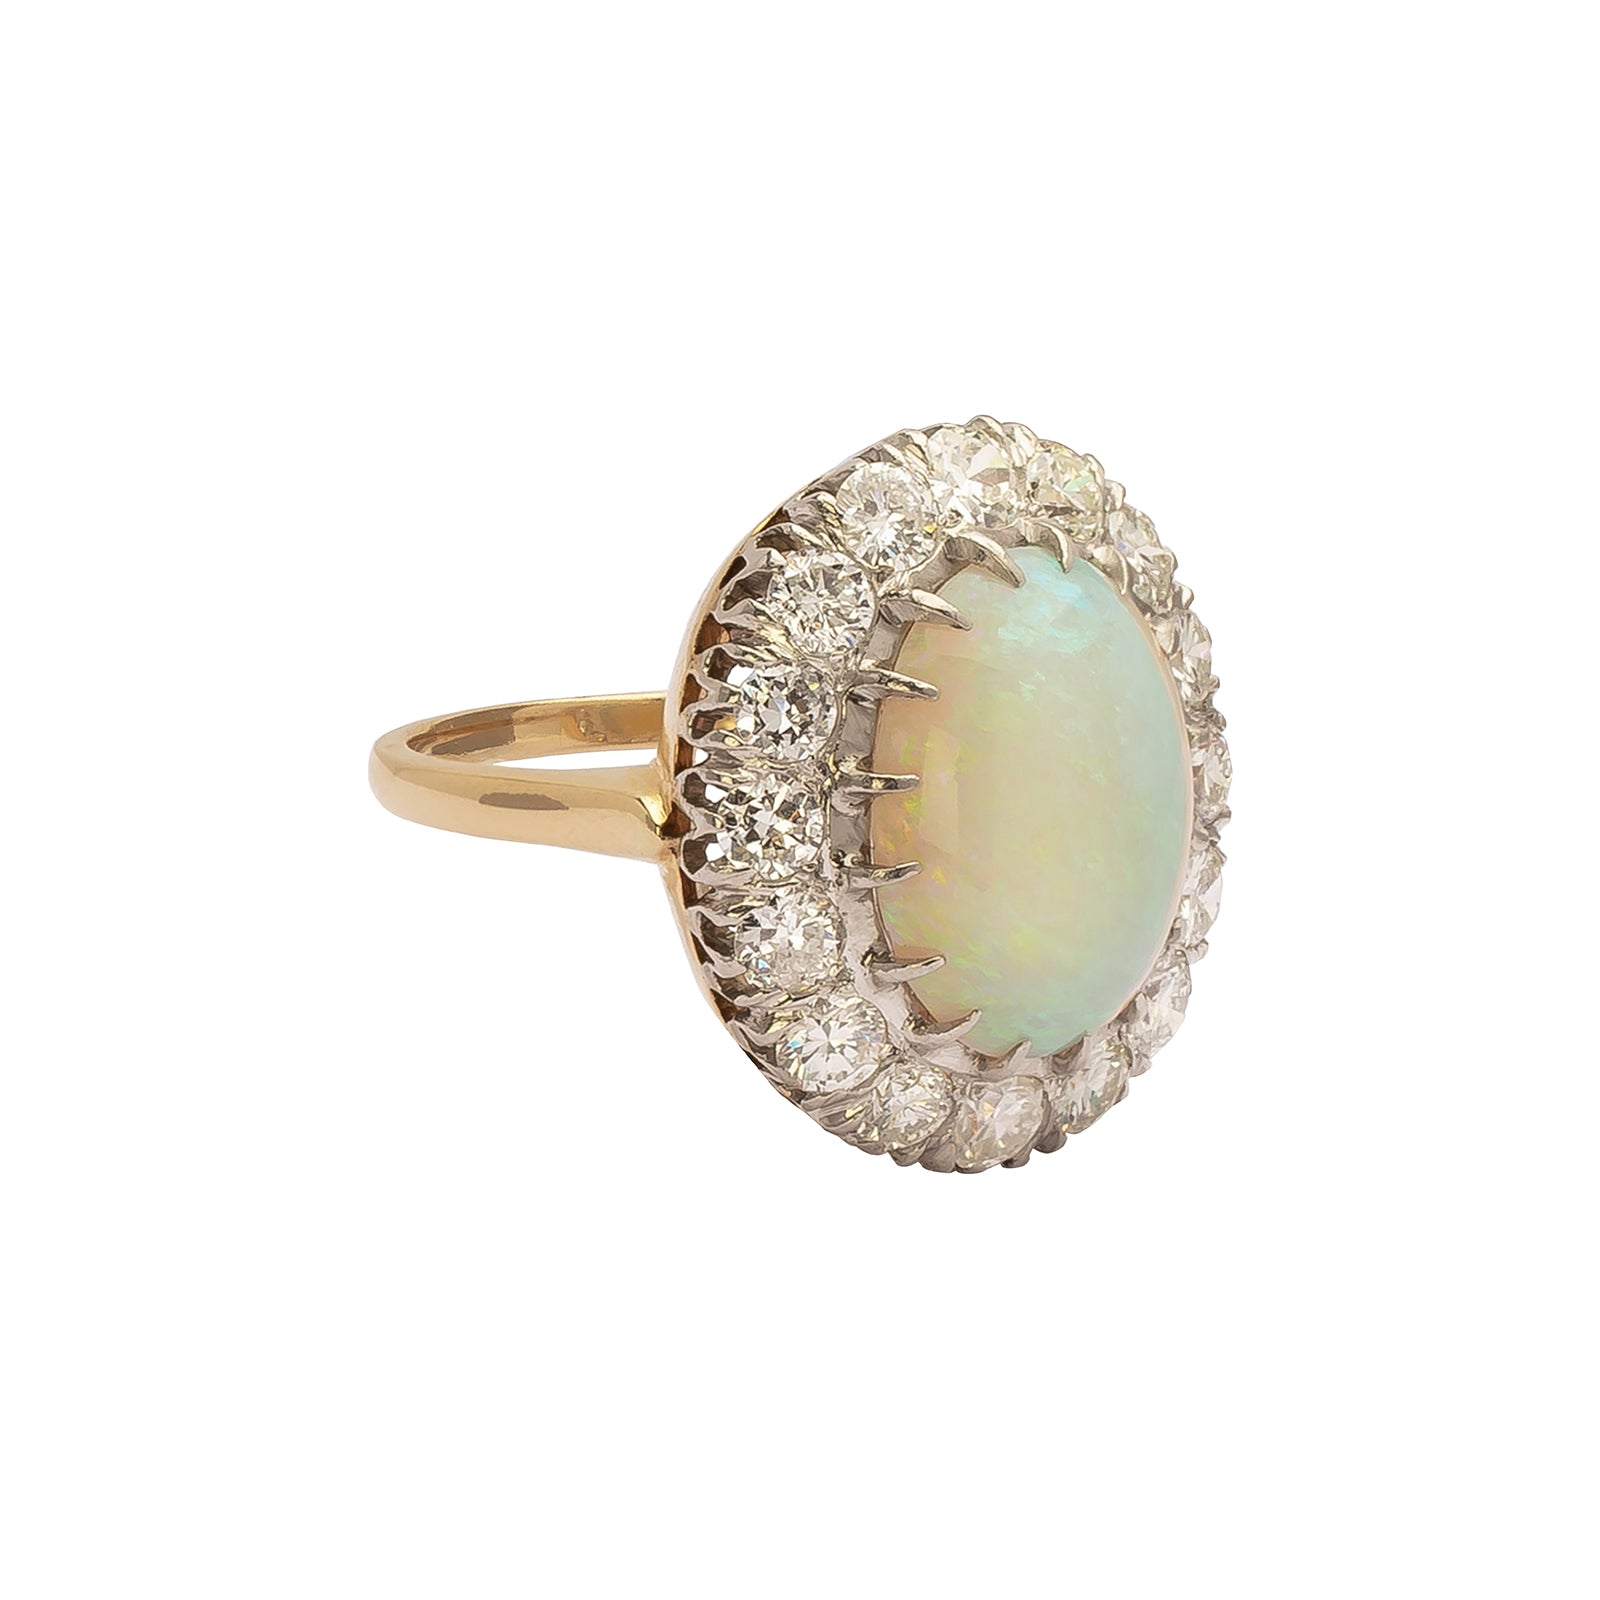 Antique & Vintage Jewelry Opal & Diamond Ring - Rings - Broken English Jewelry